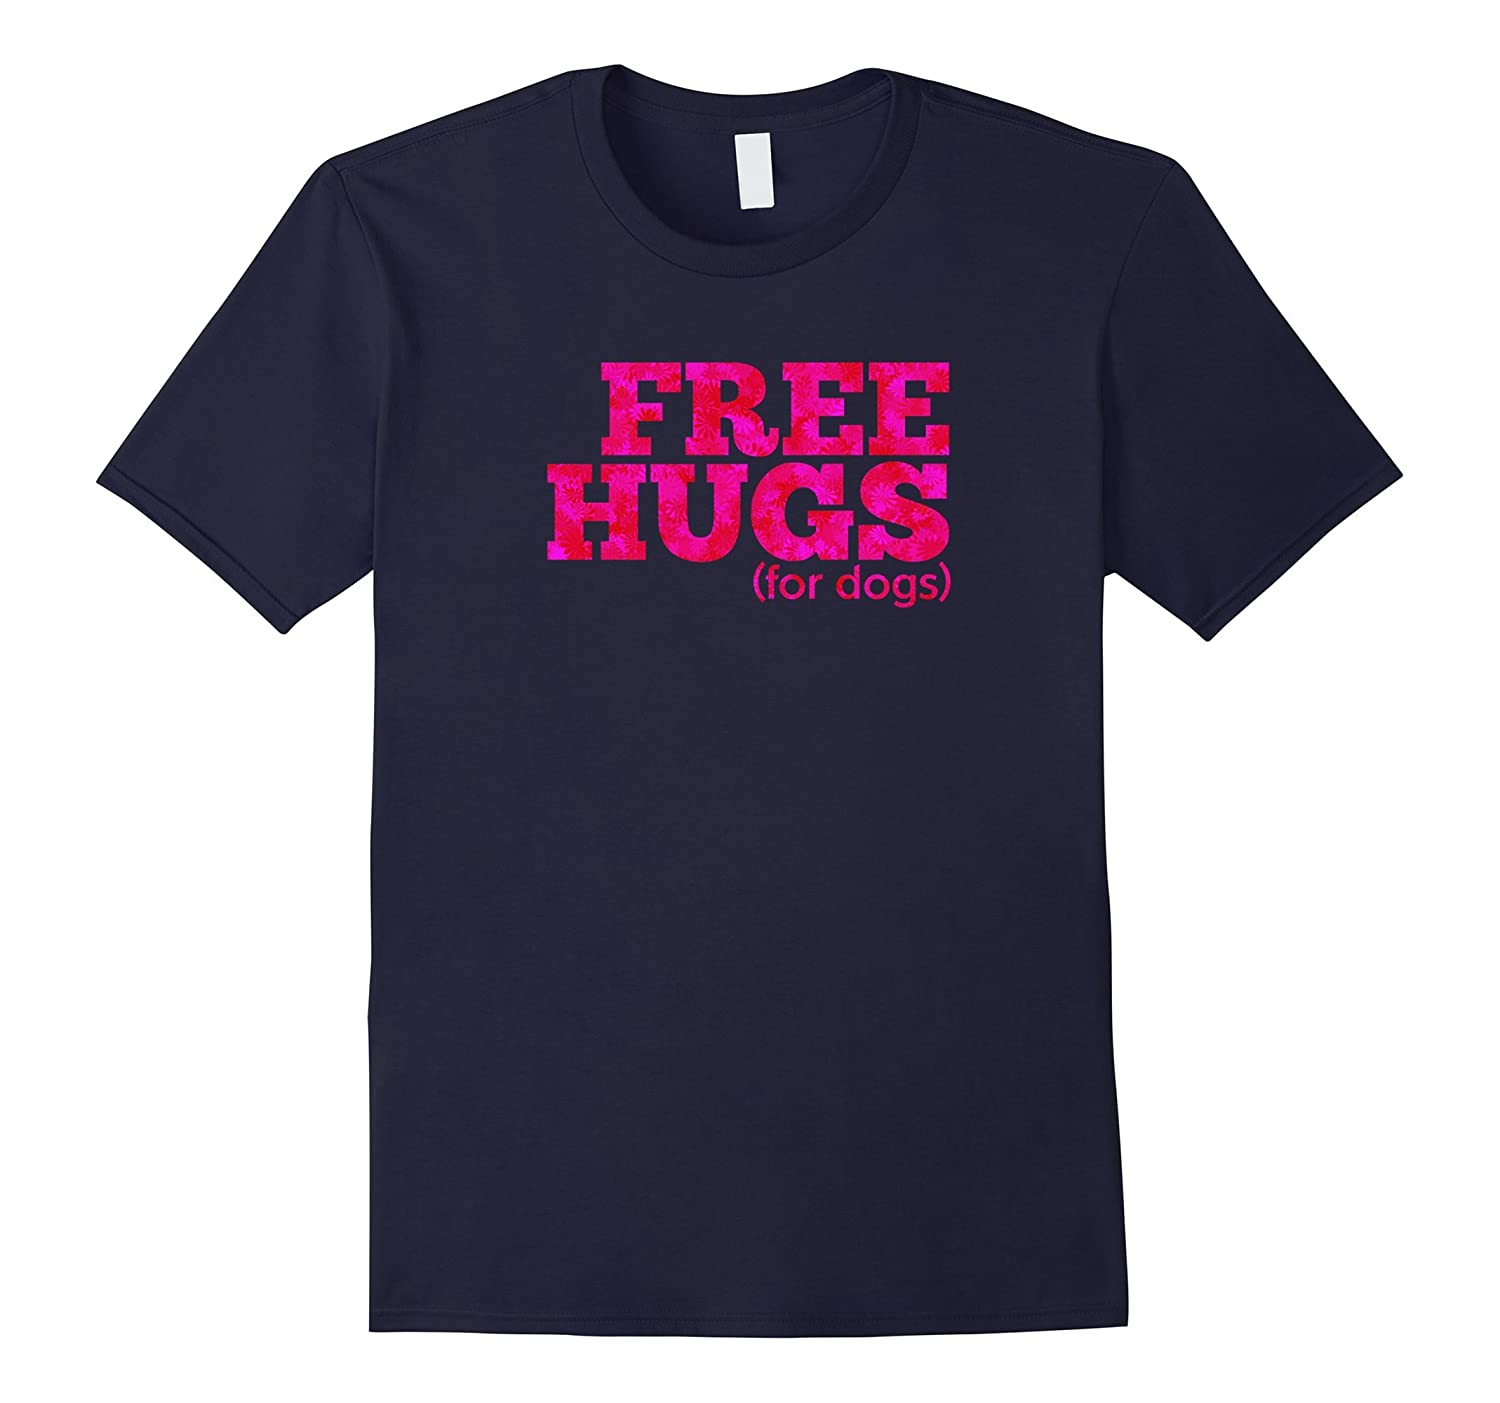 Aw Cute Dog Shirts Free Hugs For Dogs Vintage T-shirt Gift-BN